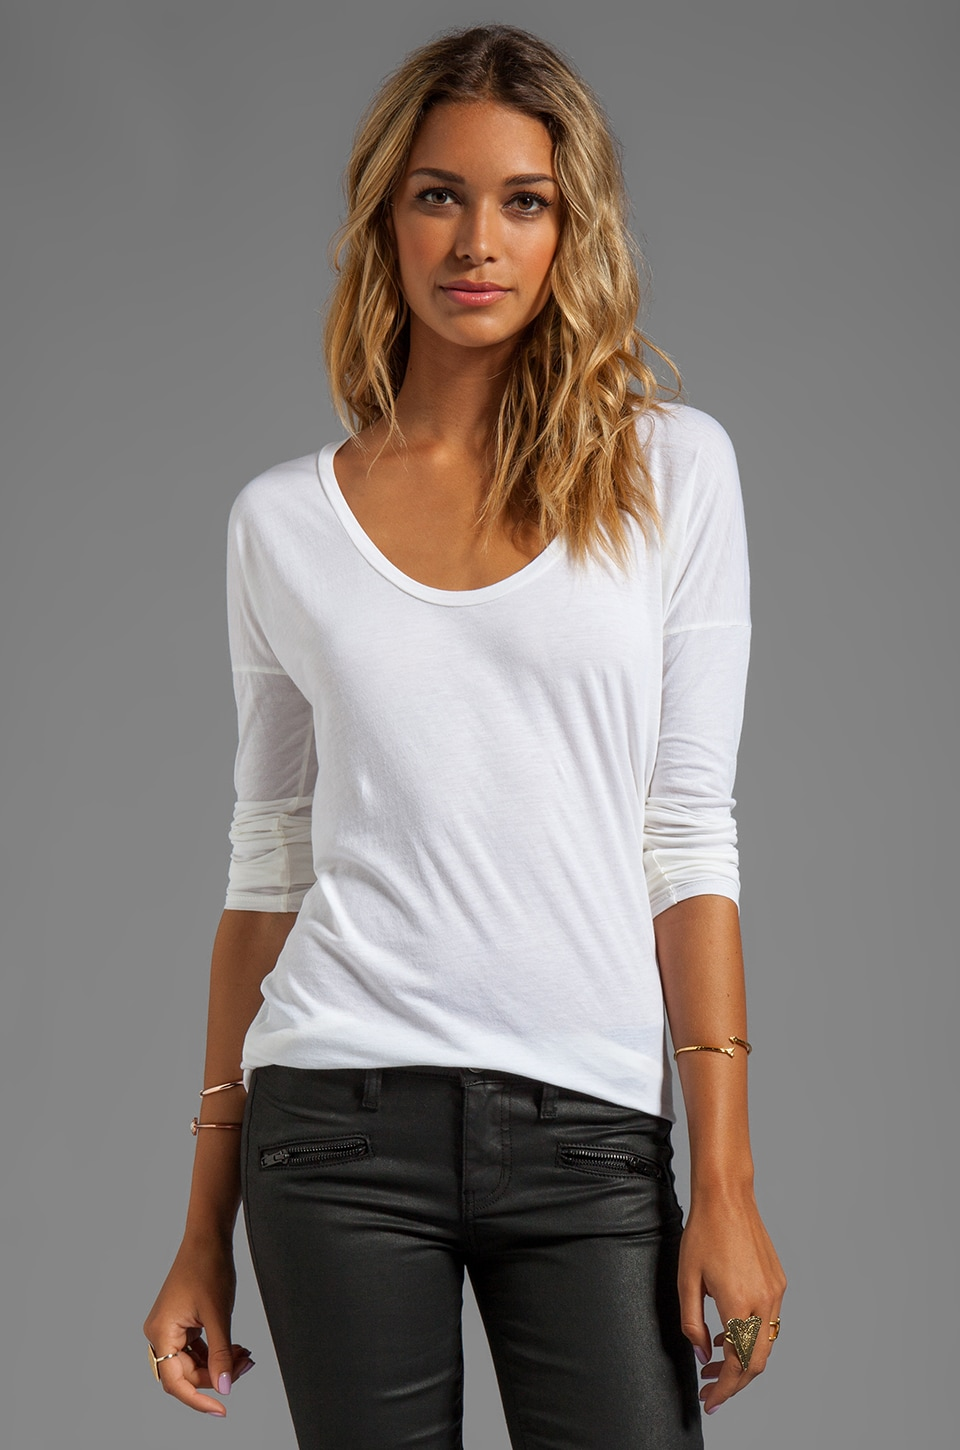 AG Adriano Goldschmied T-shirt Scoop en Blanc